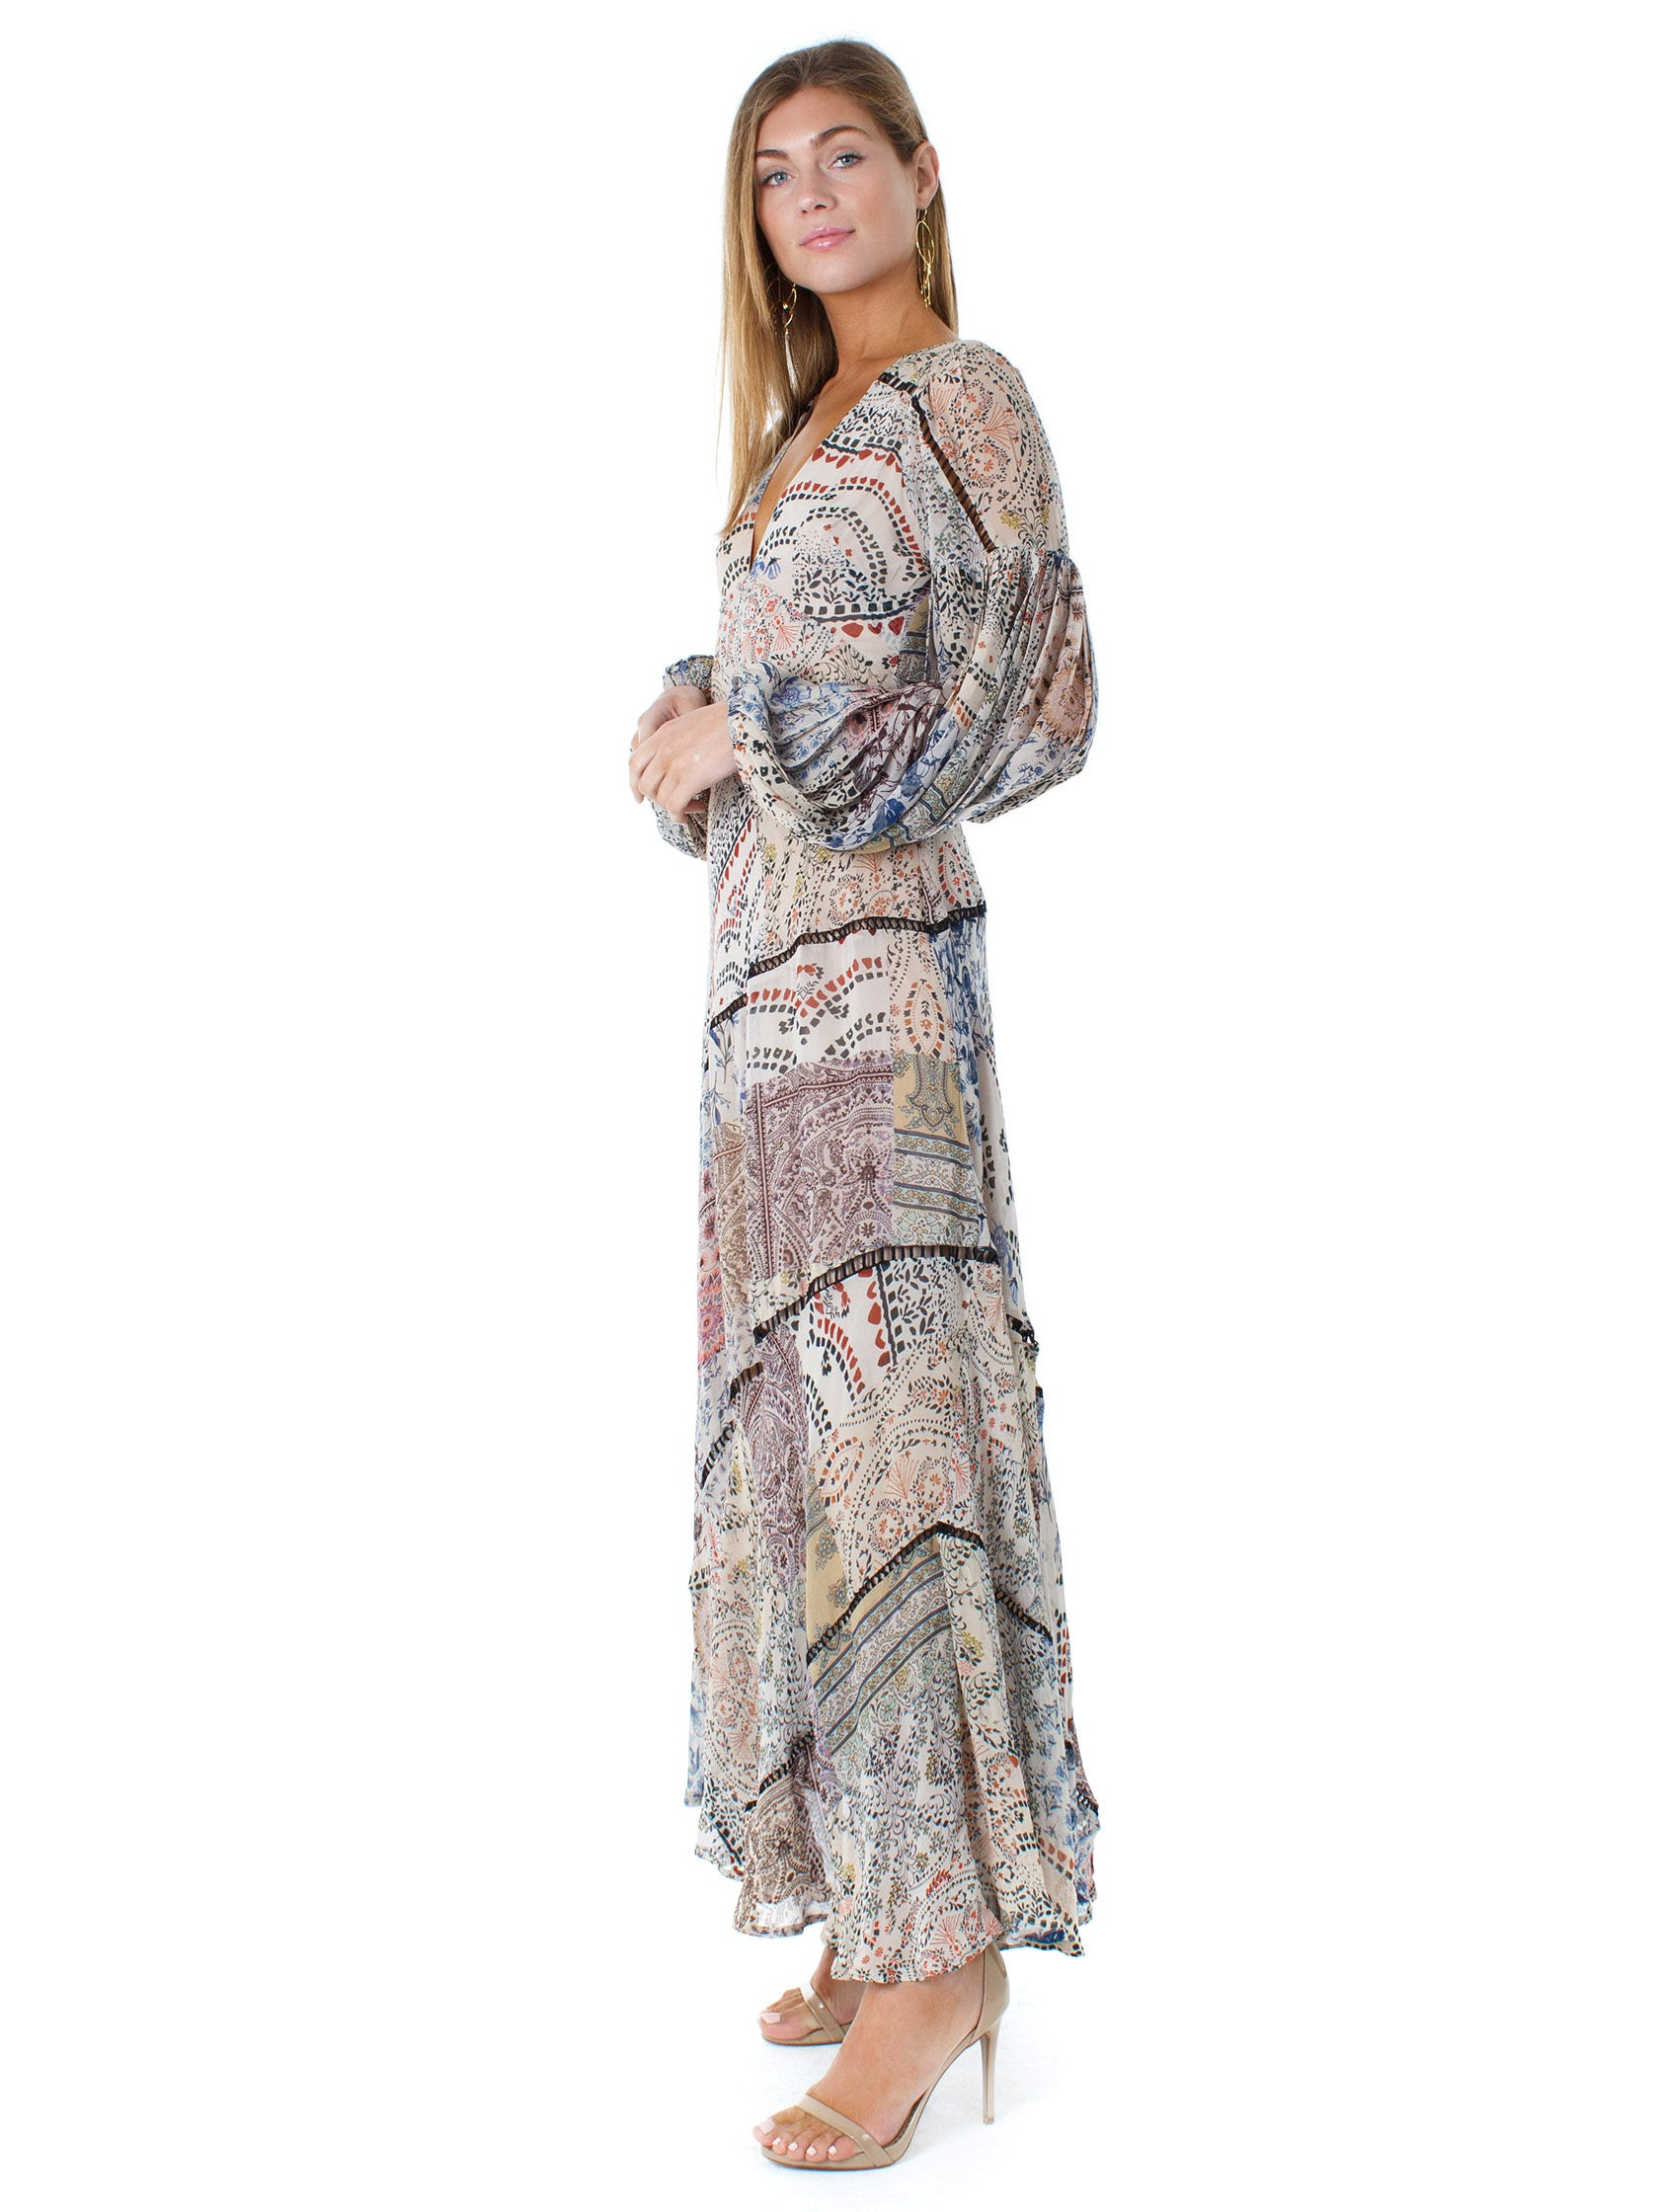 Woman wearing a dress rental from Free People called Moroccan Dreams Maxi Dress